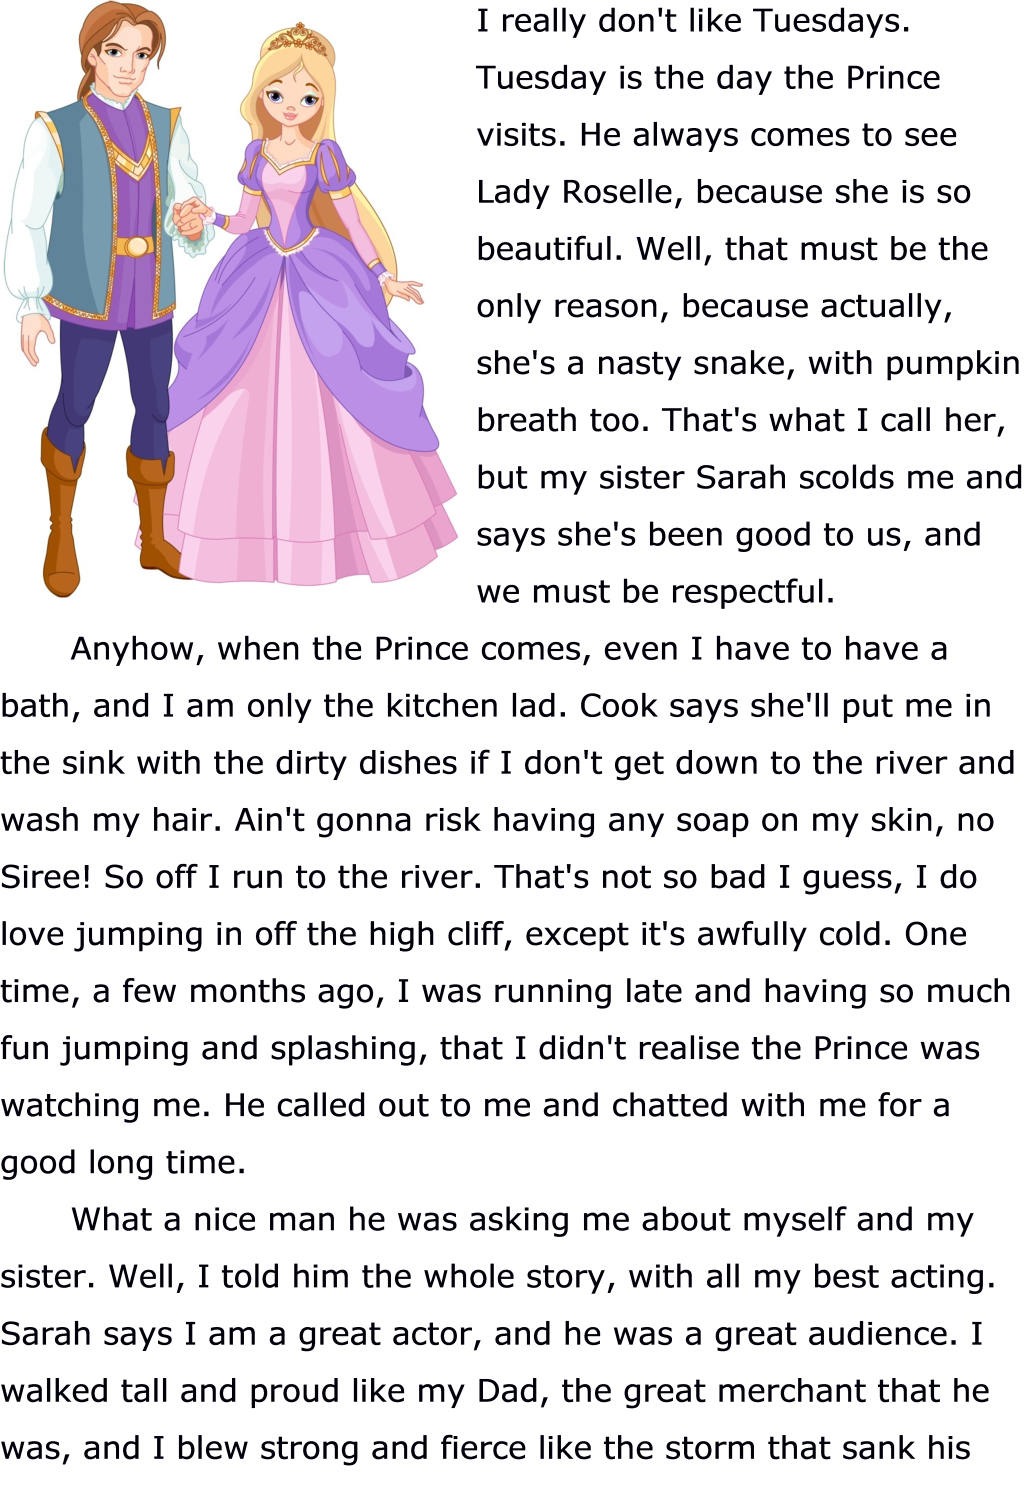 Cinderella Bedtime Story Tales For Children Cinderella Story For Kids Free Kids Books